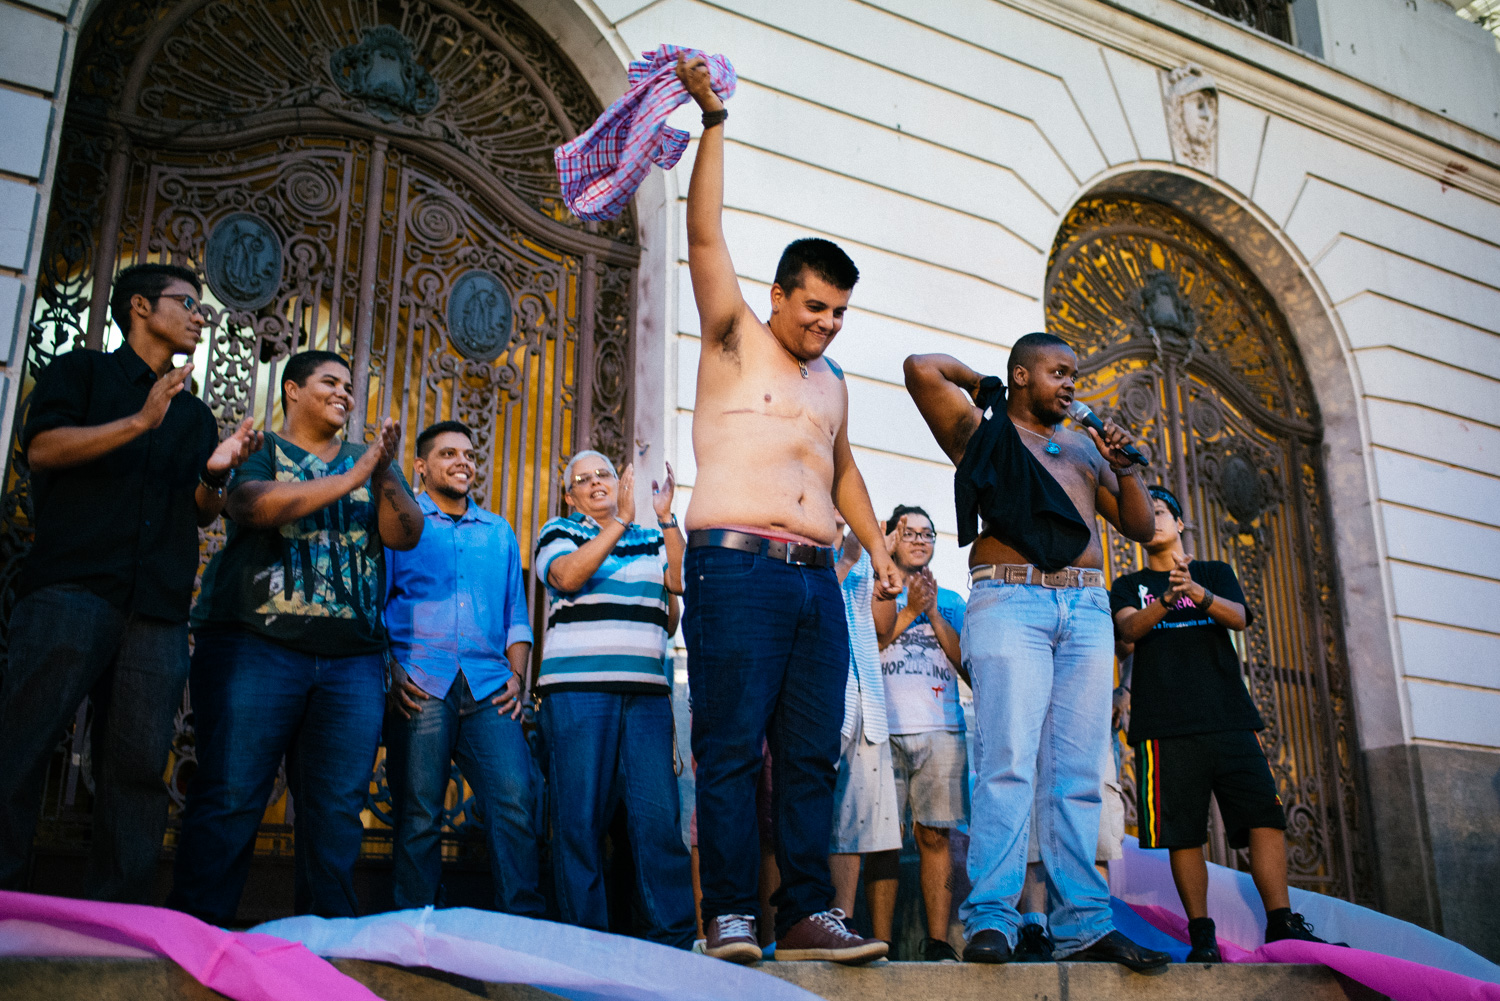 """Transgender men proudly show off their scars from breast removal surgery in front of Rio de Janeiro city hall on transgender awareness day, January 29th, 2015. In a passionate speech they proclaimed their equality among men and to a thunderous applause proclaimed they were """"men with p**sies""""."""